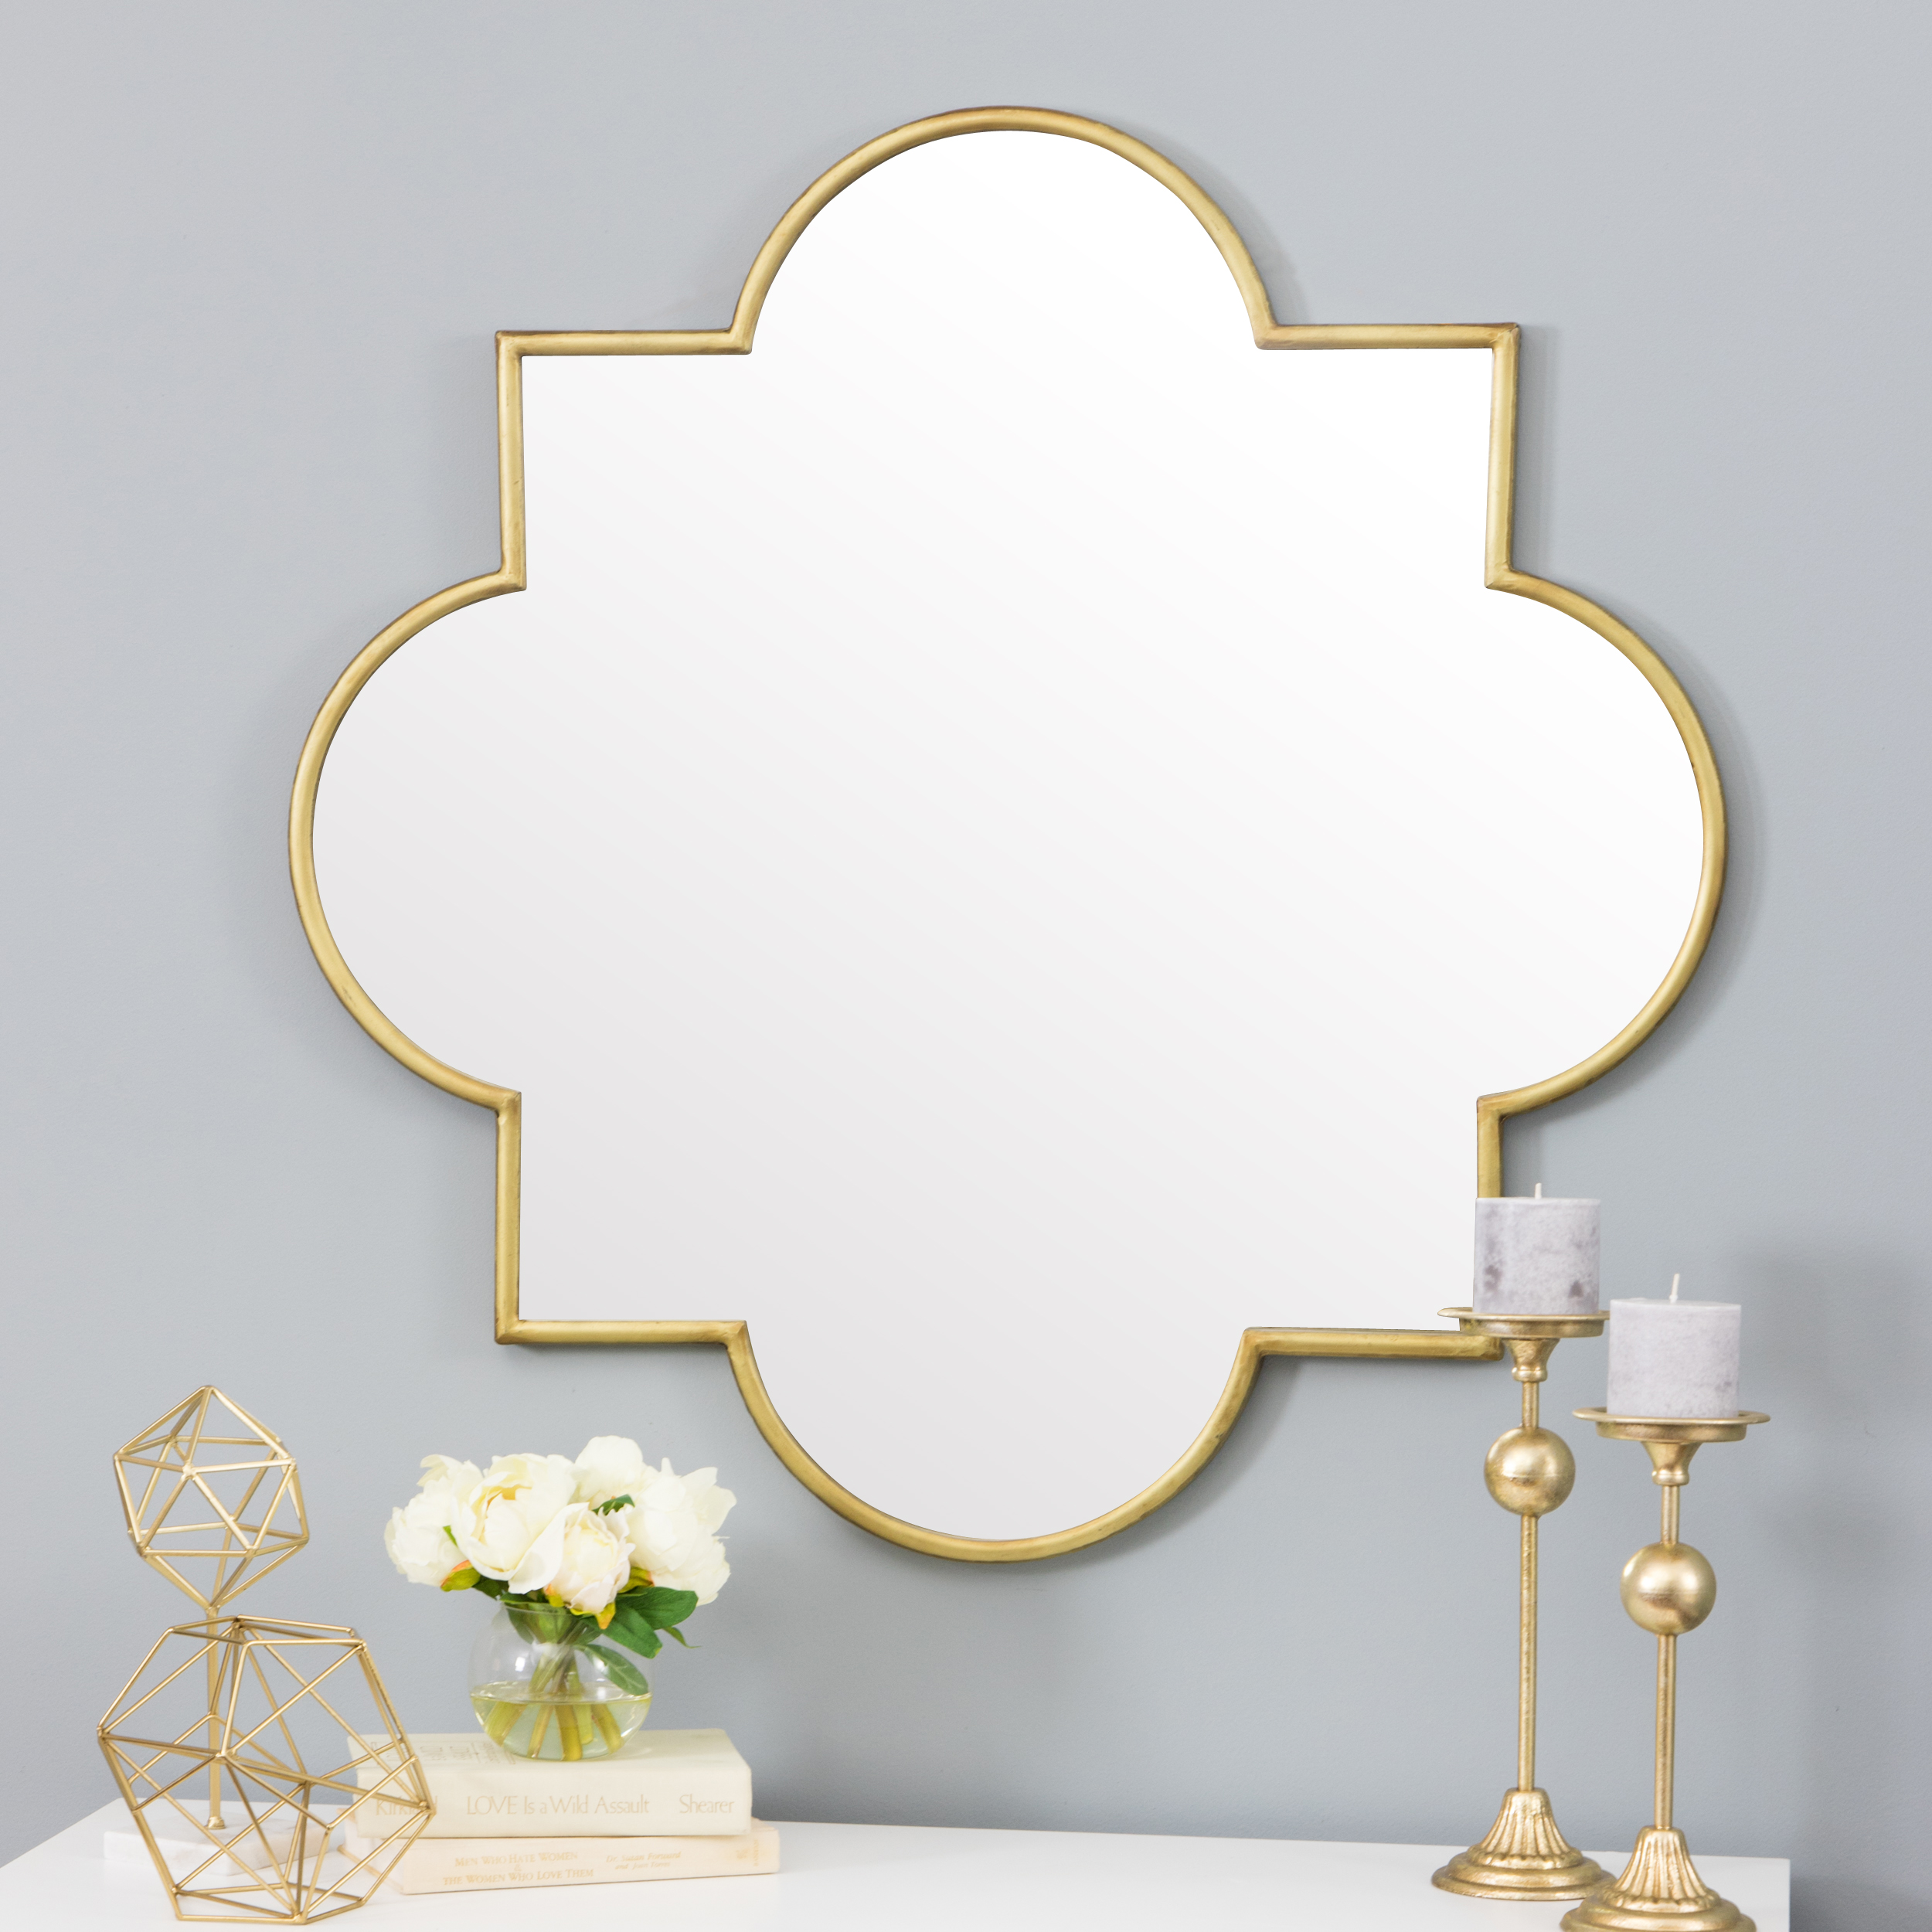 Amira Gold Moroccan Wall Mirror by Aspire Home Accents